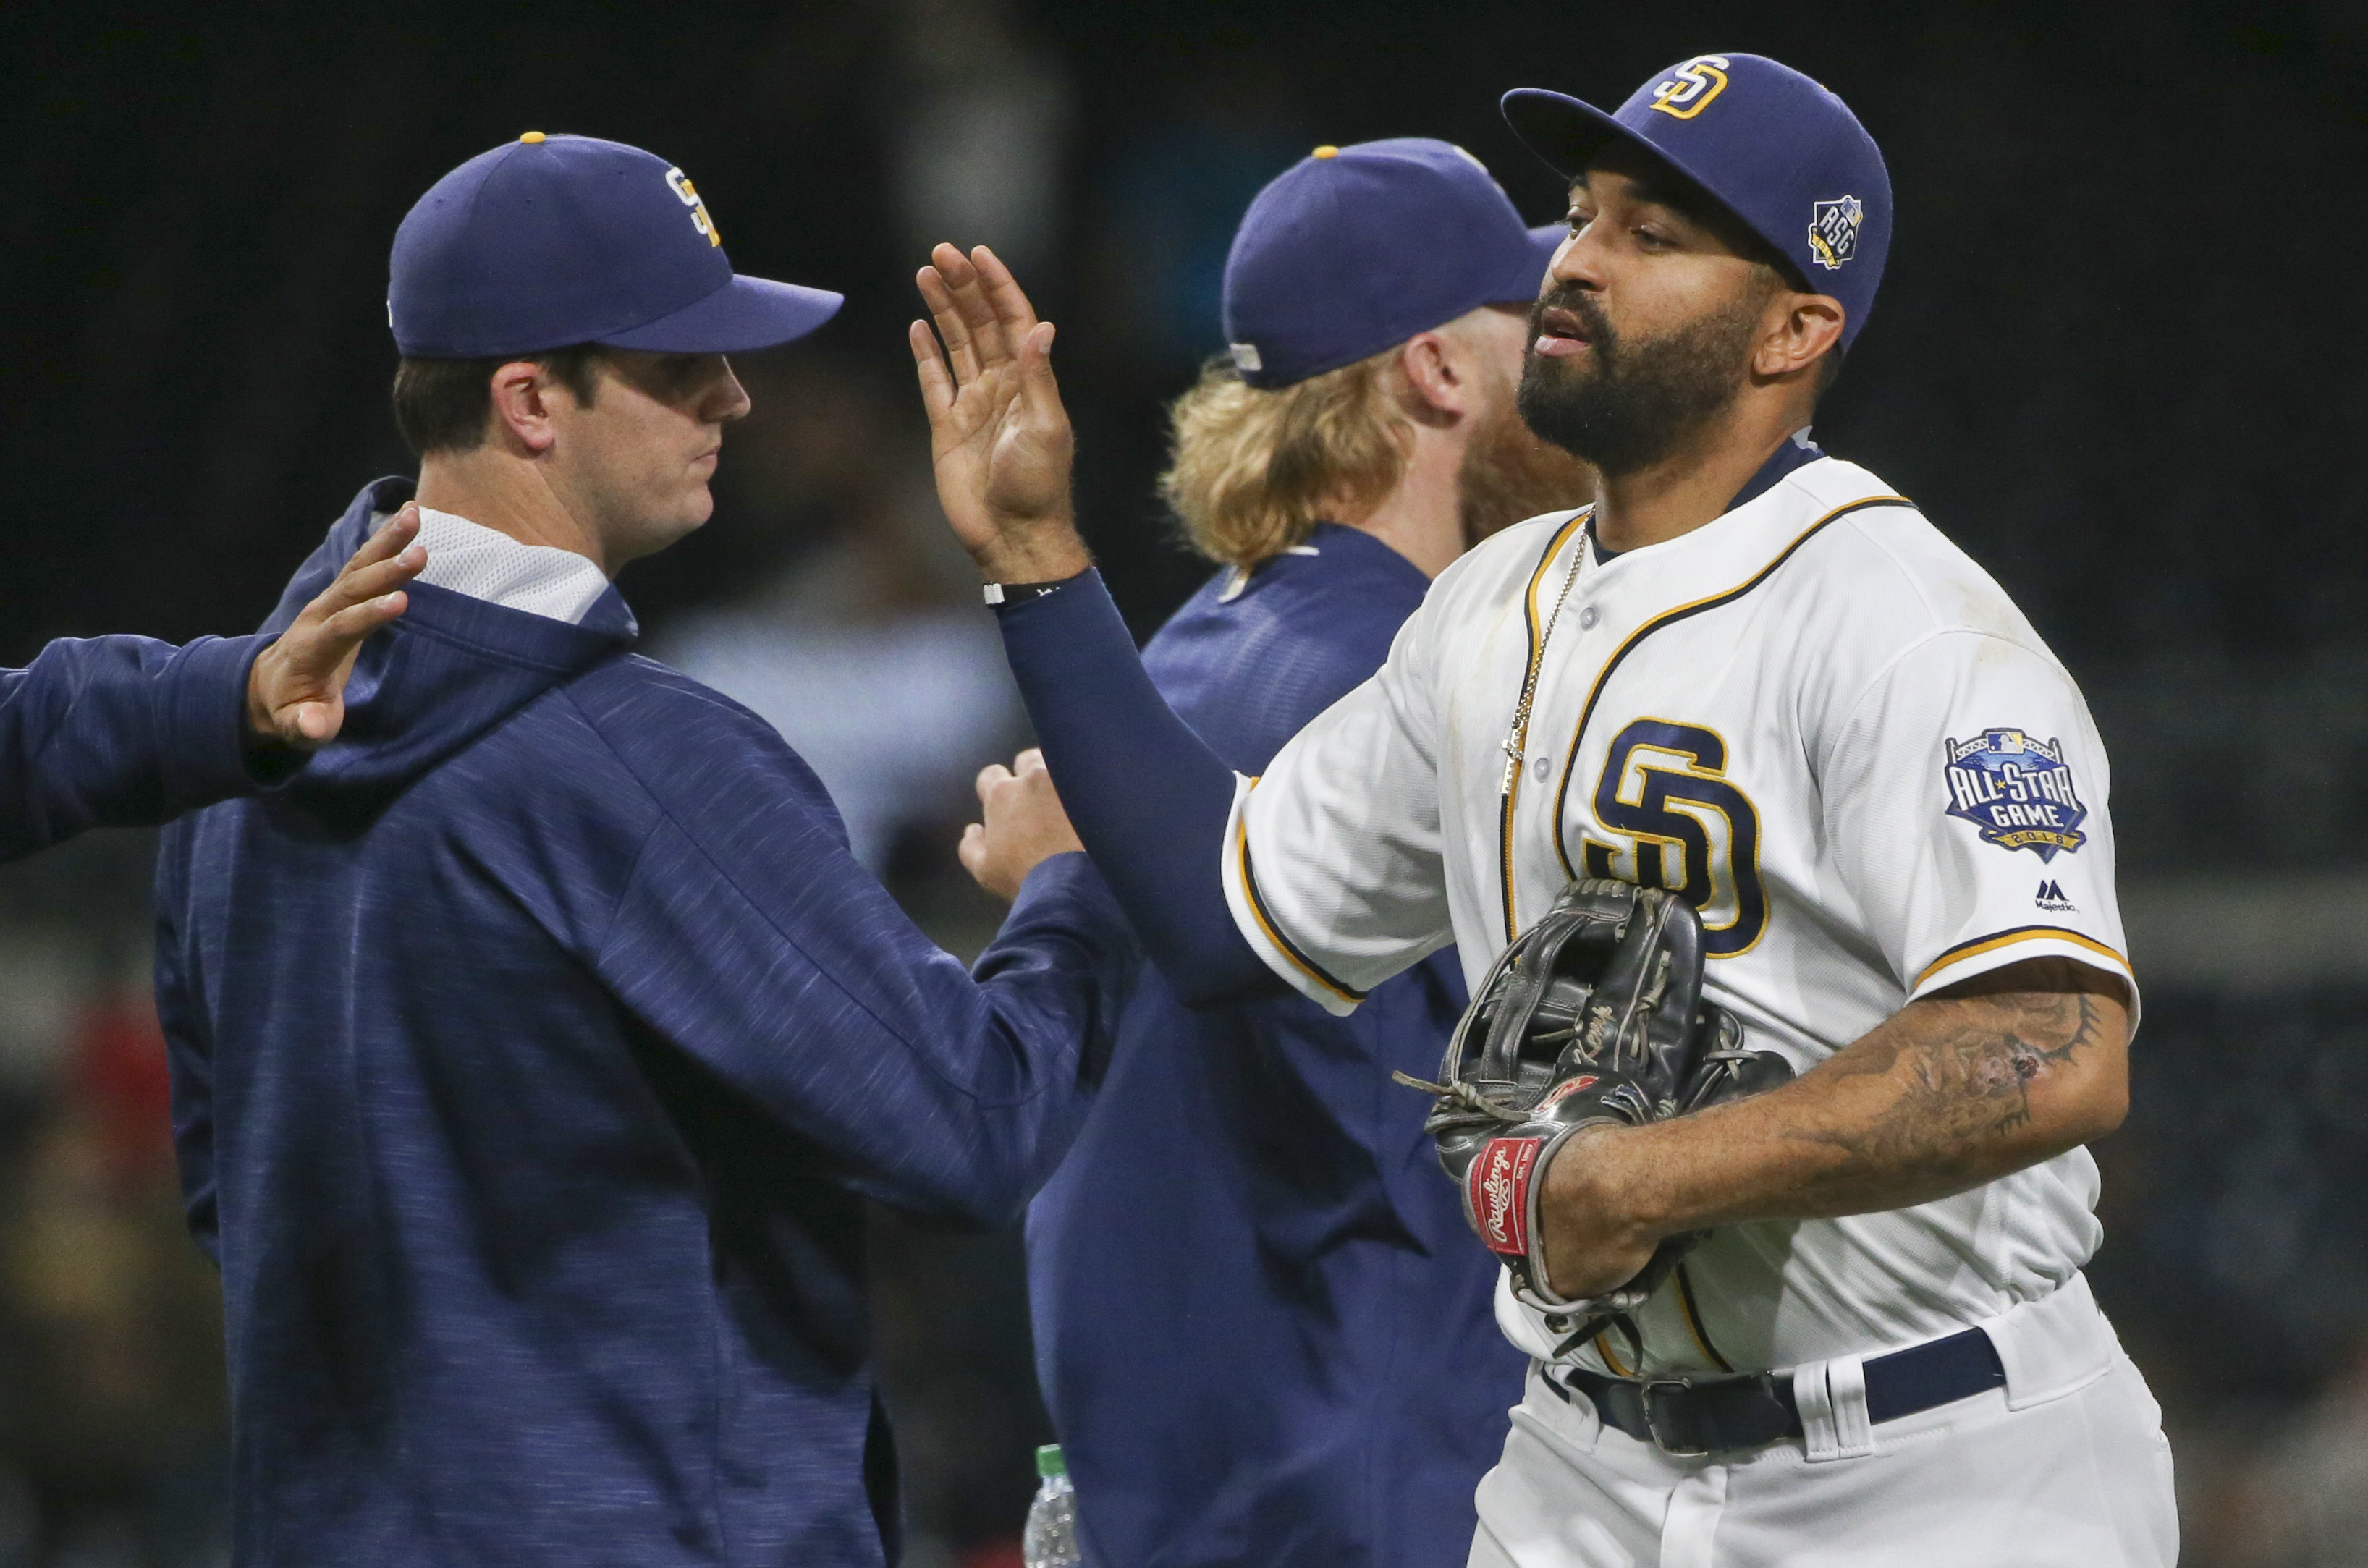 San Diego Padres' Matt Kemp, who had two hits and drove in two runs, high fives his way through teammates after the Padres 7-2 victory over the Atlanta Braves in a baseball game Monday, June 6, 2016, in San Diego. (AP Photo/Lenny Ignelzi)